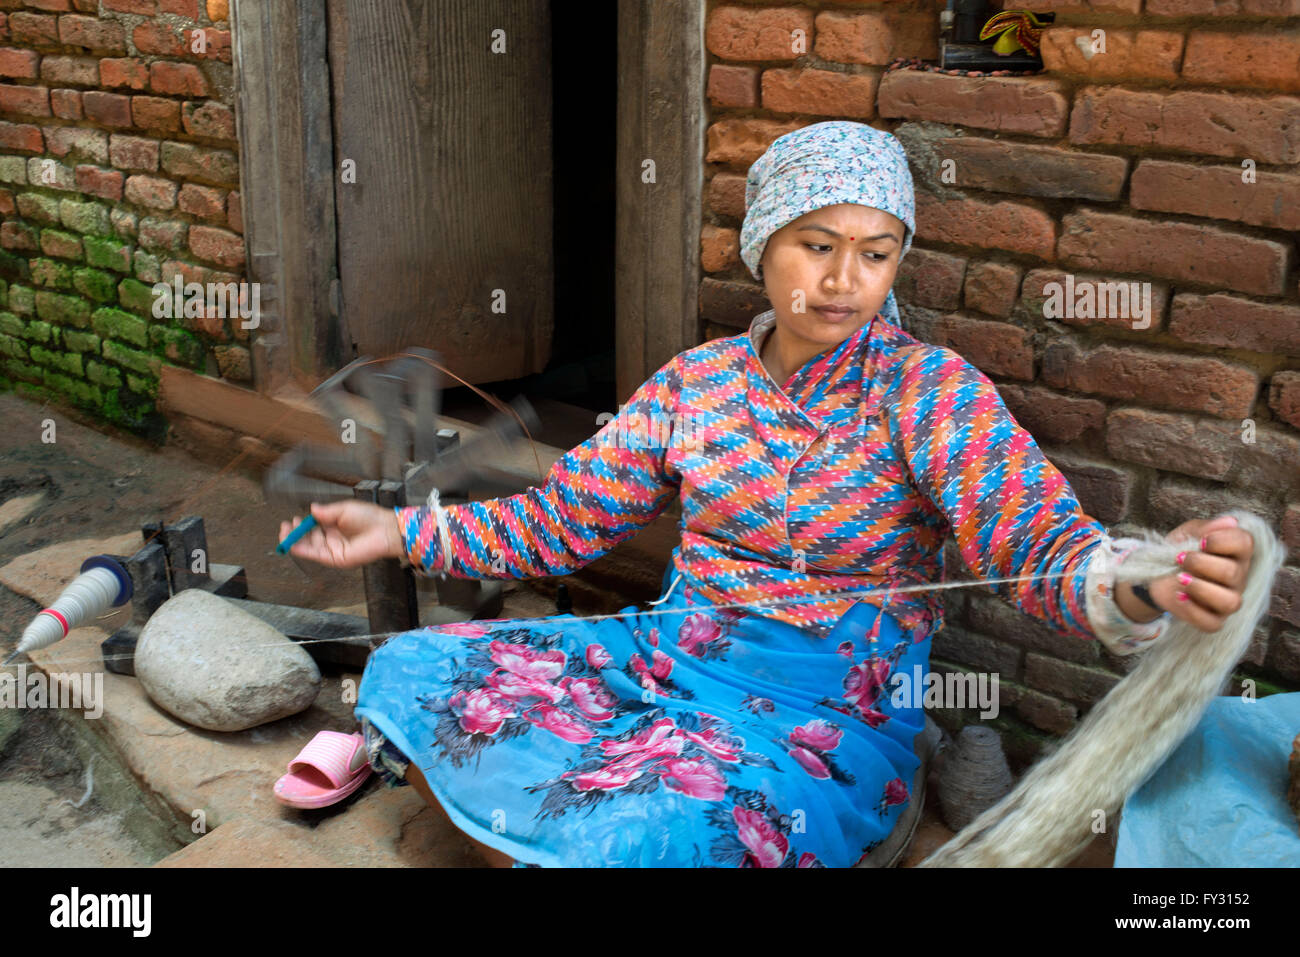 A woman spins wool at the small village of Bungamati, Nepal - Stock Image